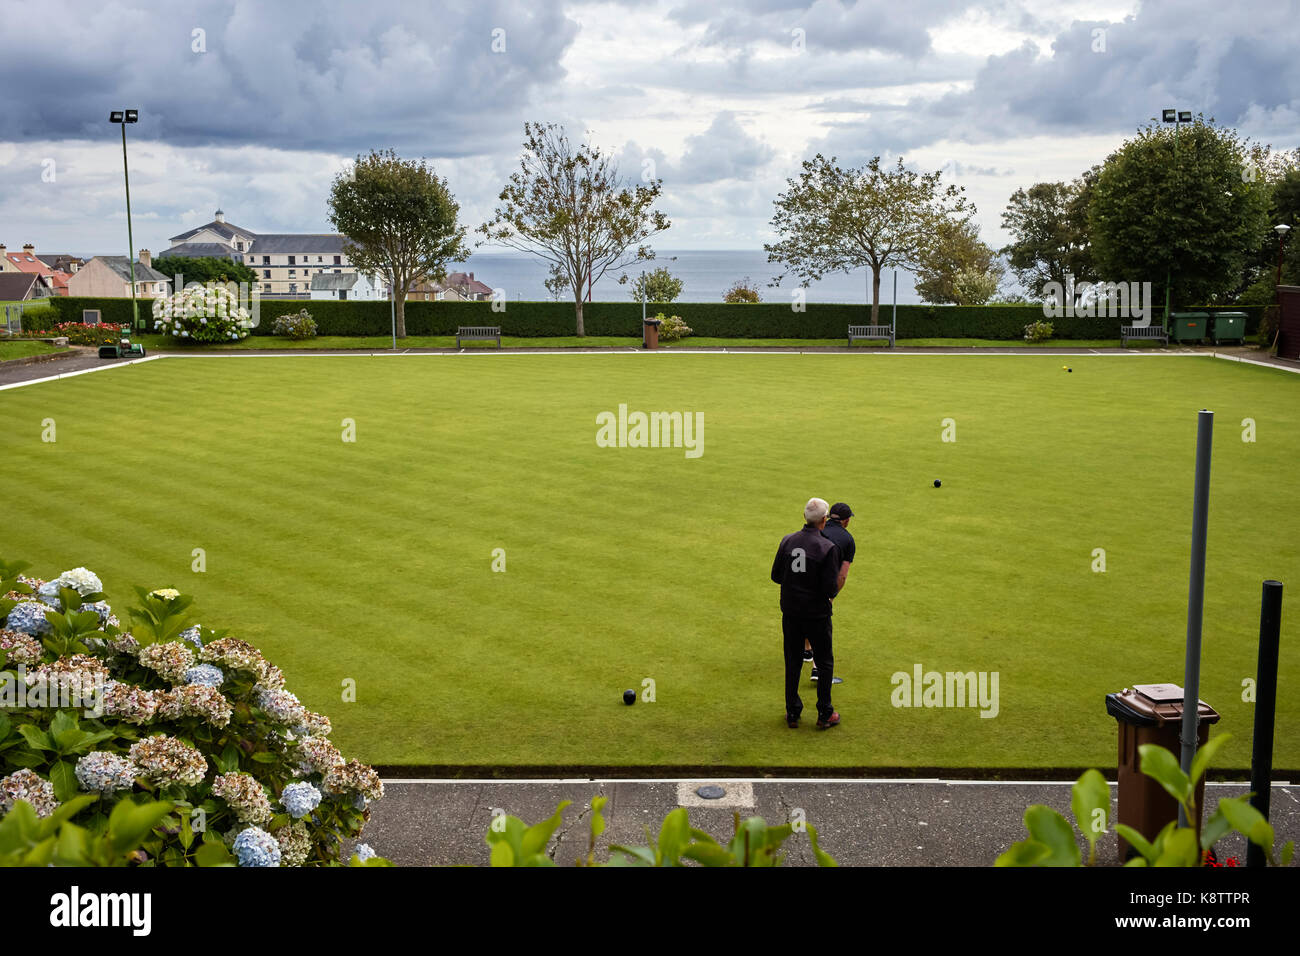 Two men on bowling green at Onchan, Isle of Man - Stock Image